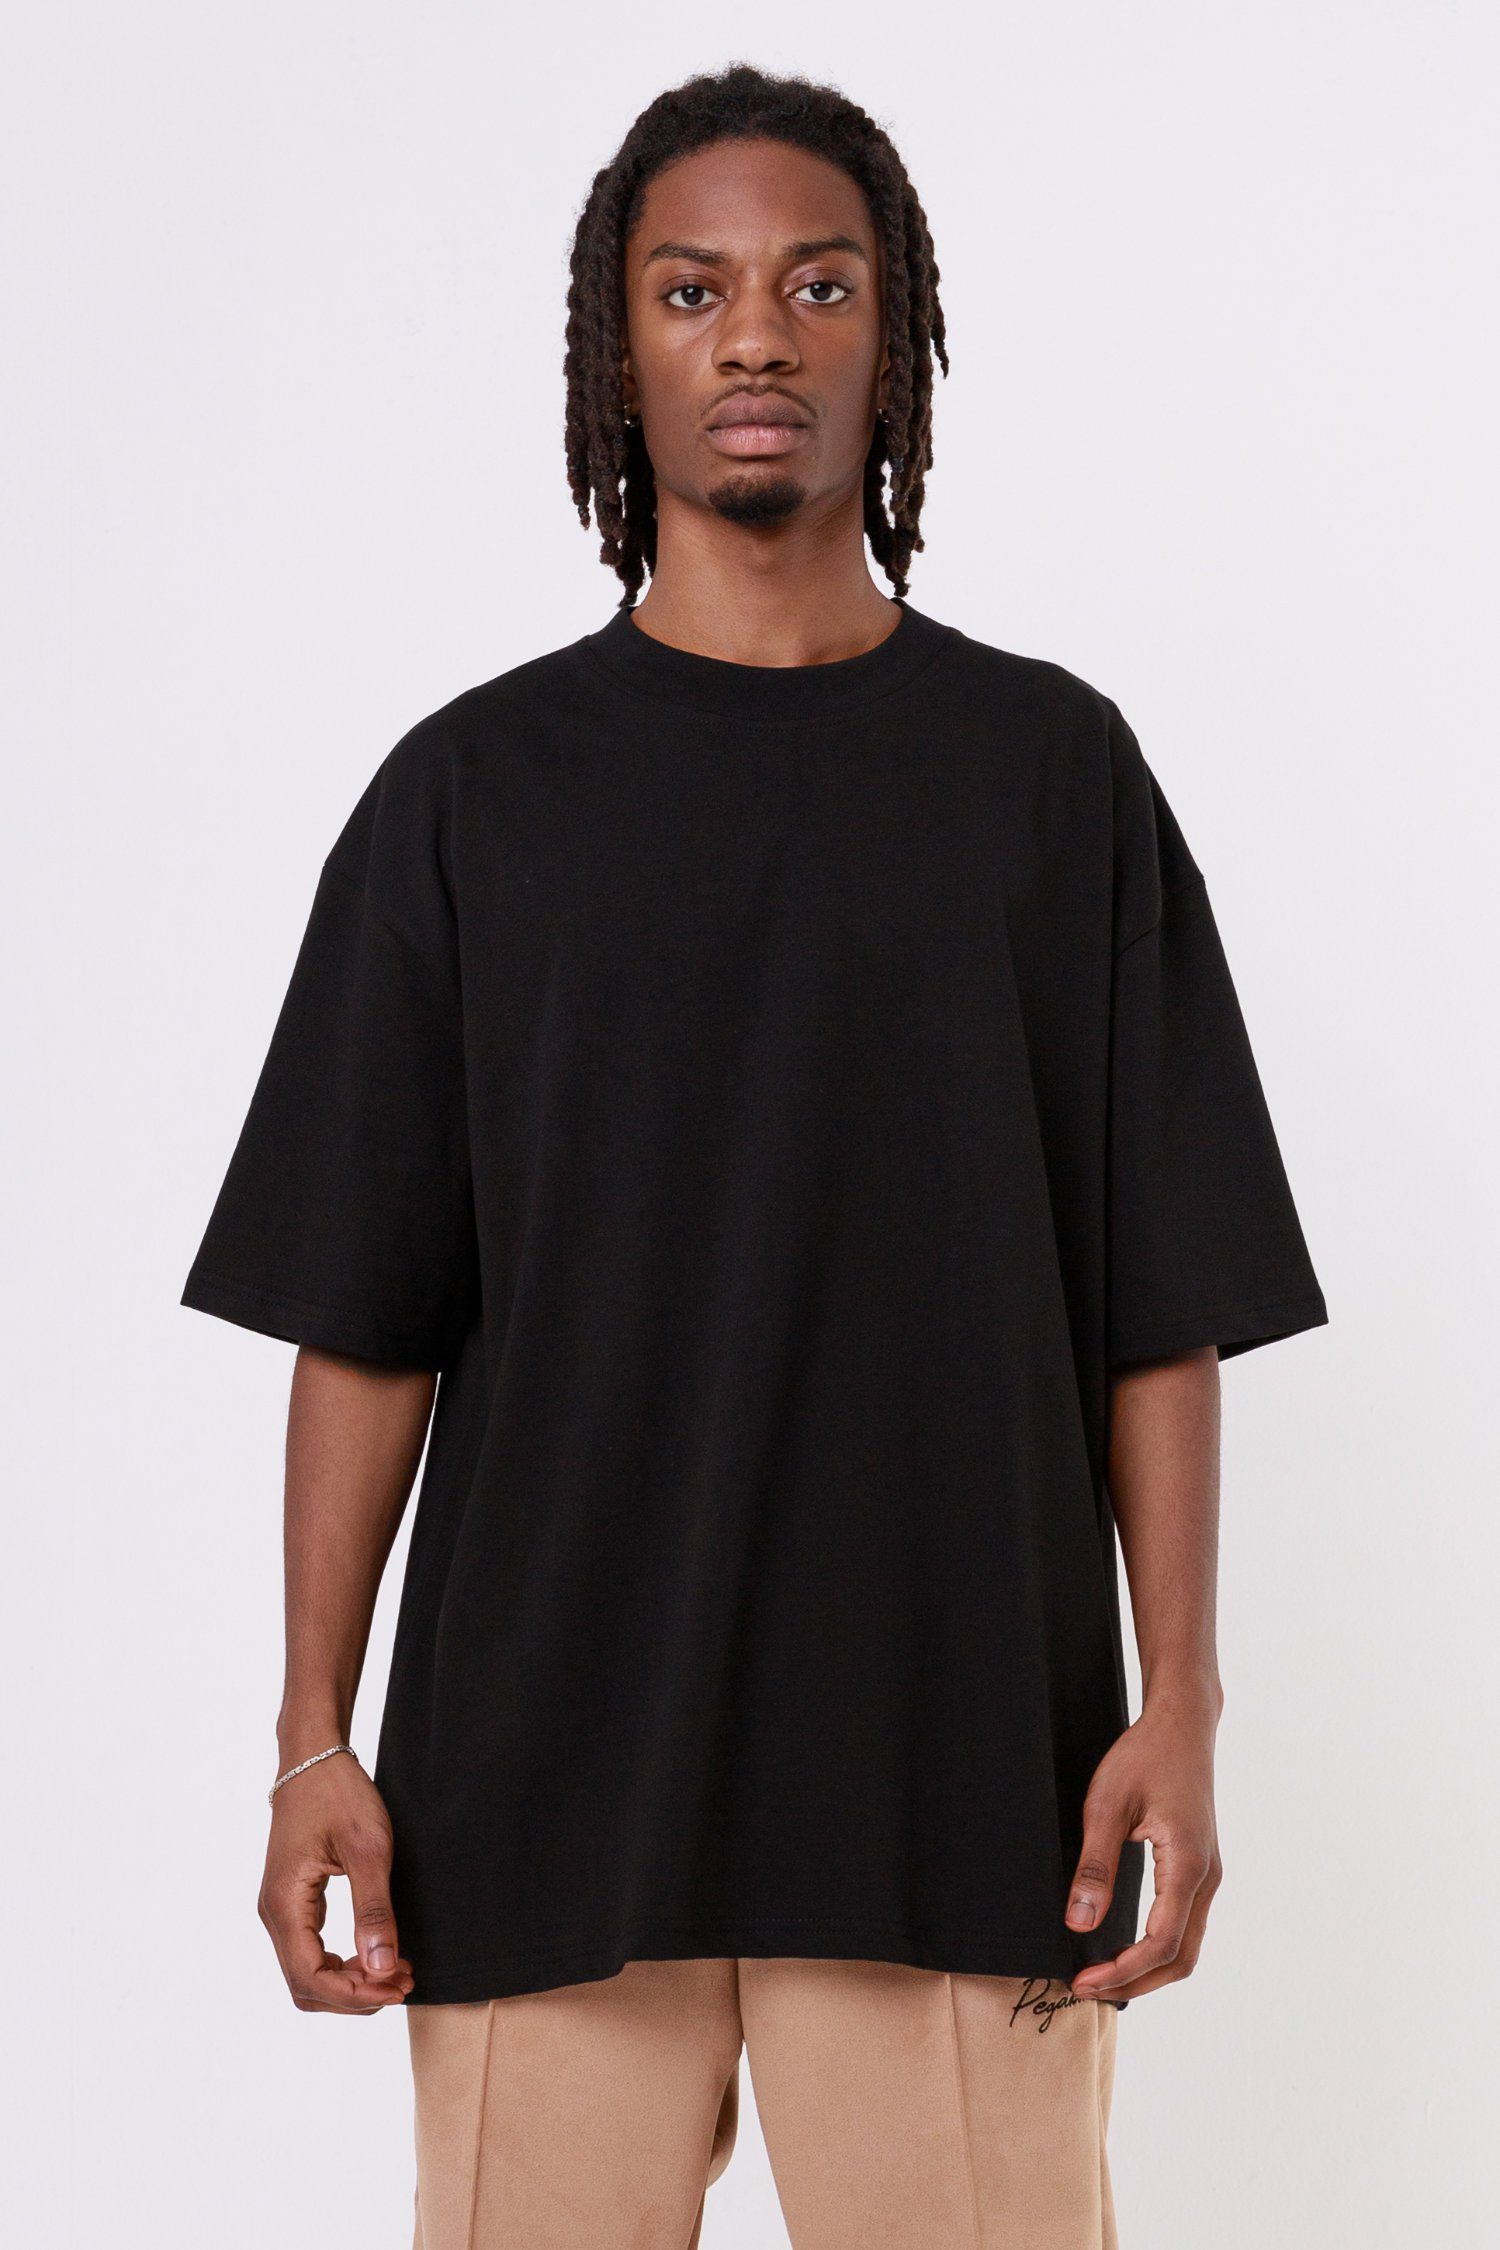 Heavy Oversized Tee Black T-SHIRT One blood